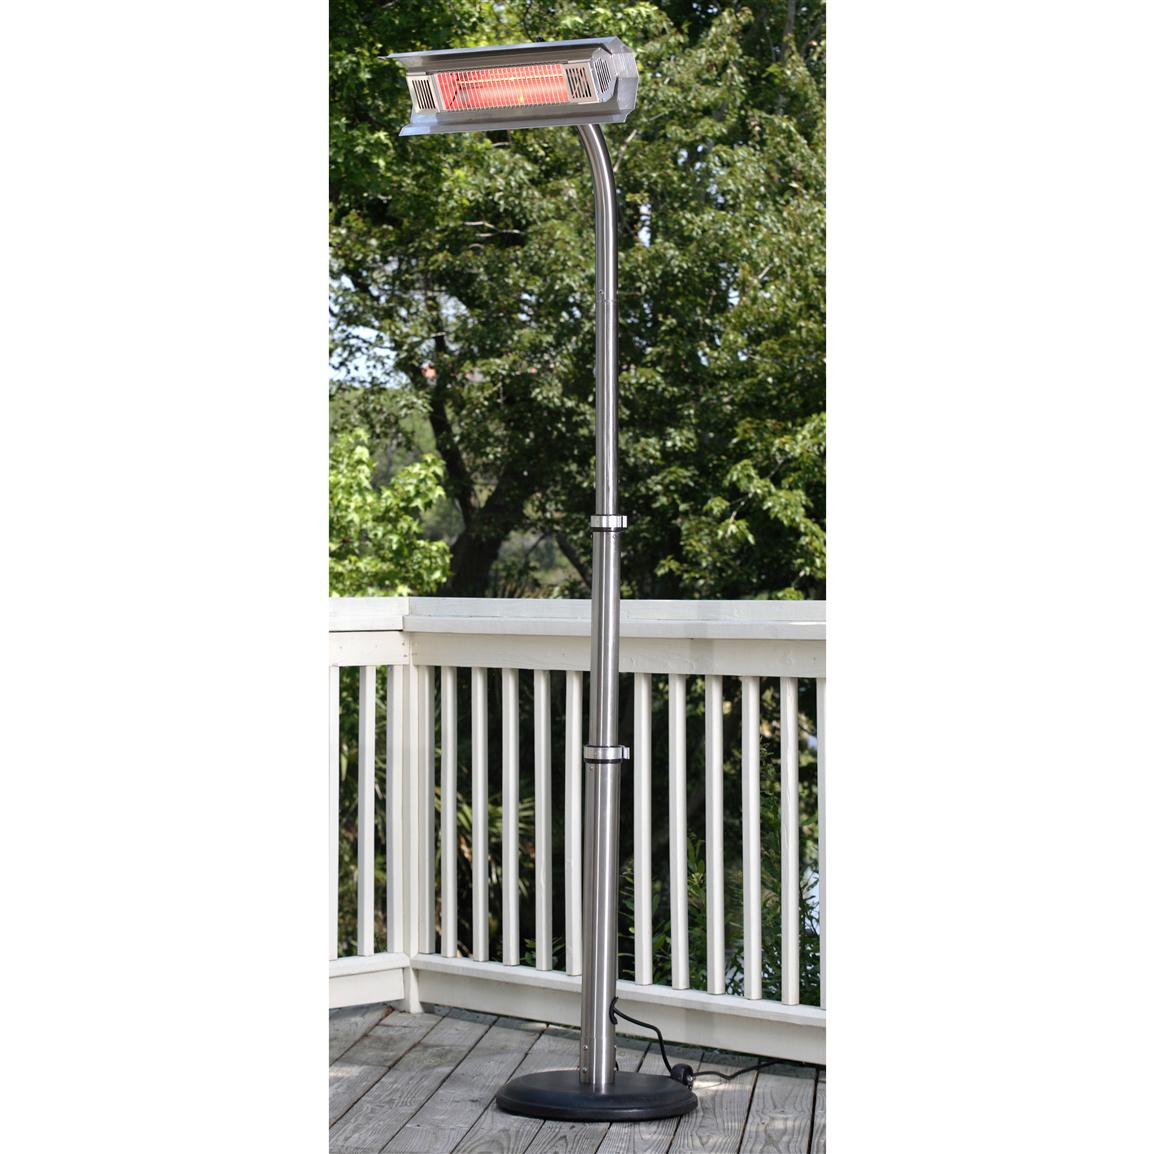 Fire Sense Stainless Steel Telescoping Offset Pole-mounted Infrared Patio Heater